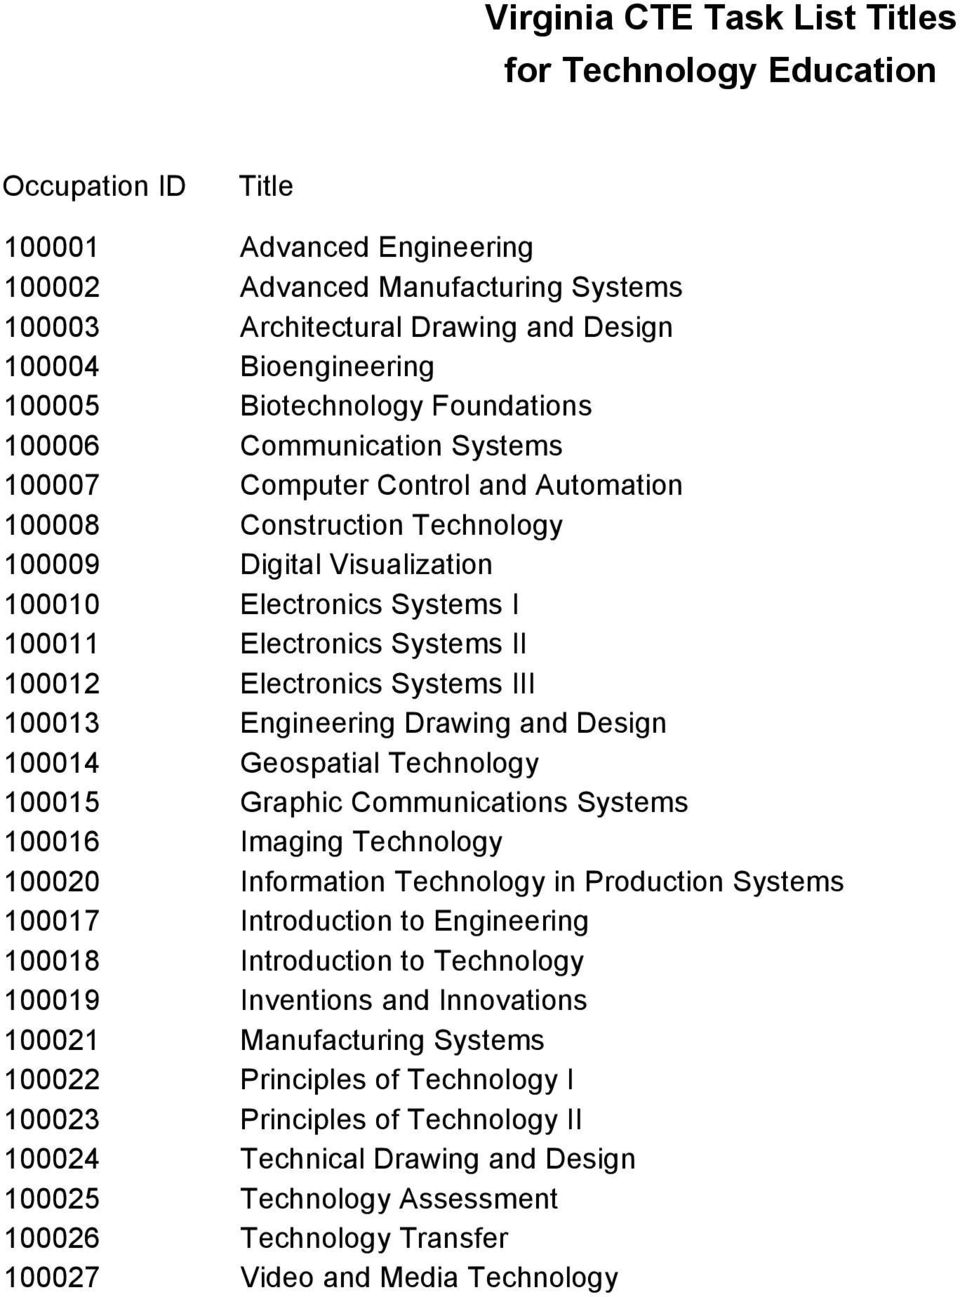 100012 Electronics Systems III 100013 Engineering Drawing and Design 100014 Geospatial Technology 100015 Graphic Communications Systems 100016 Imaging Technology 100020 Information Technology in